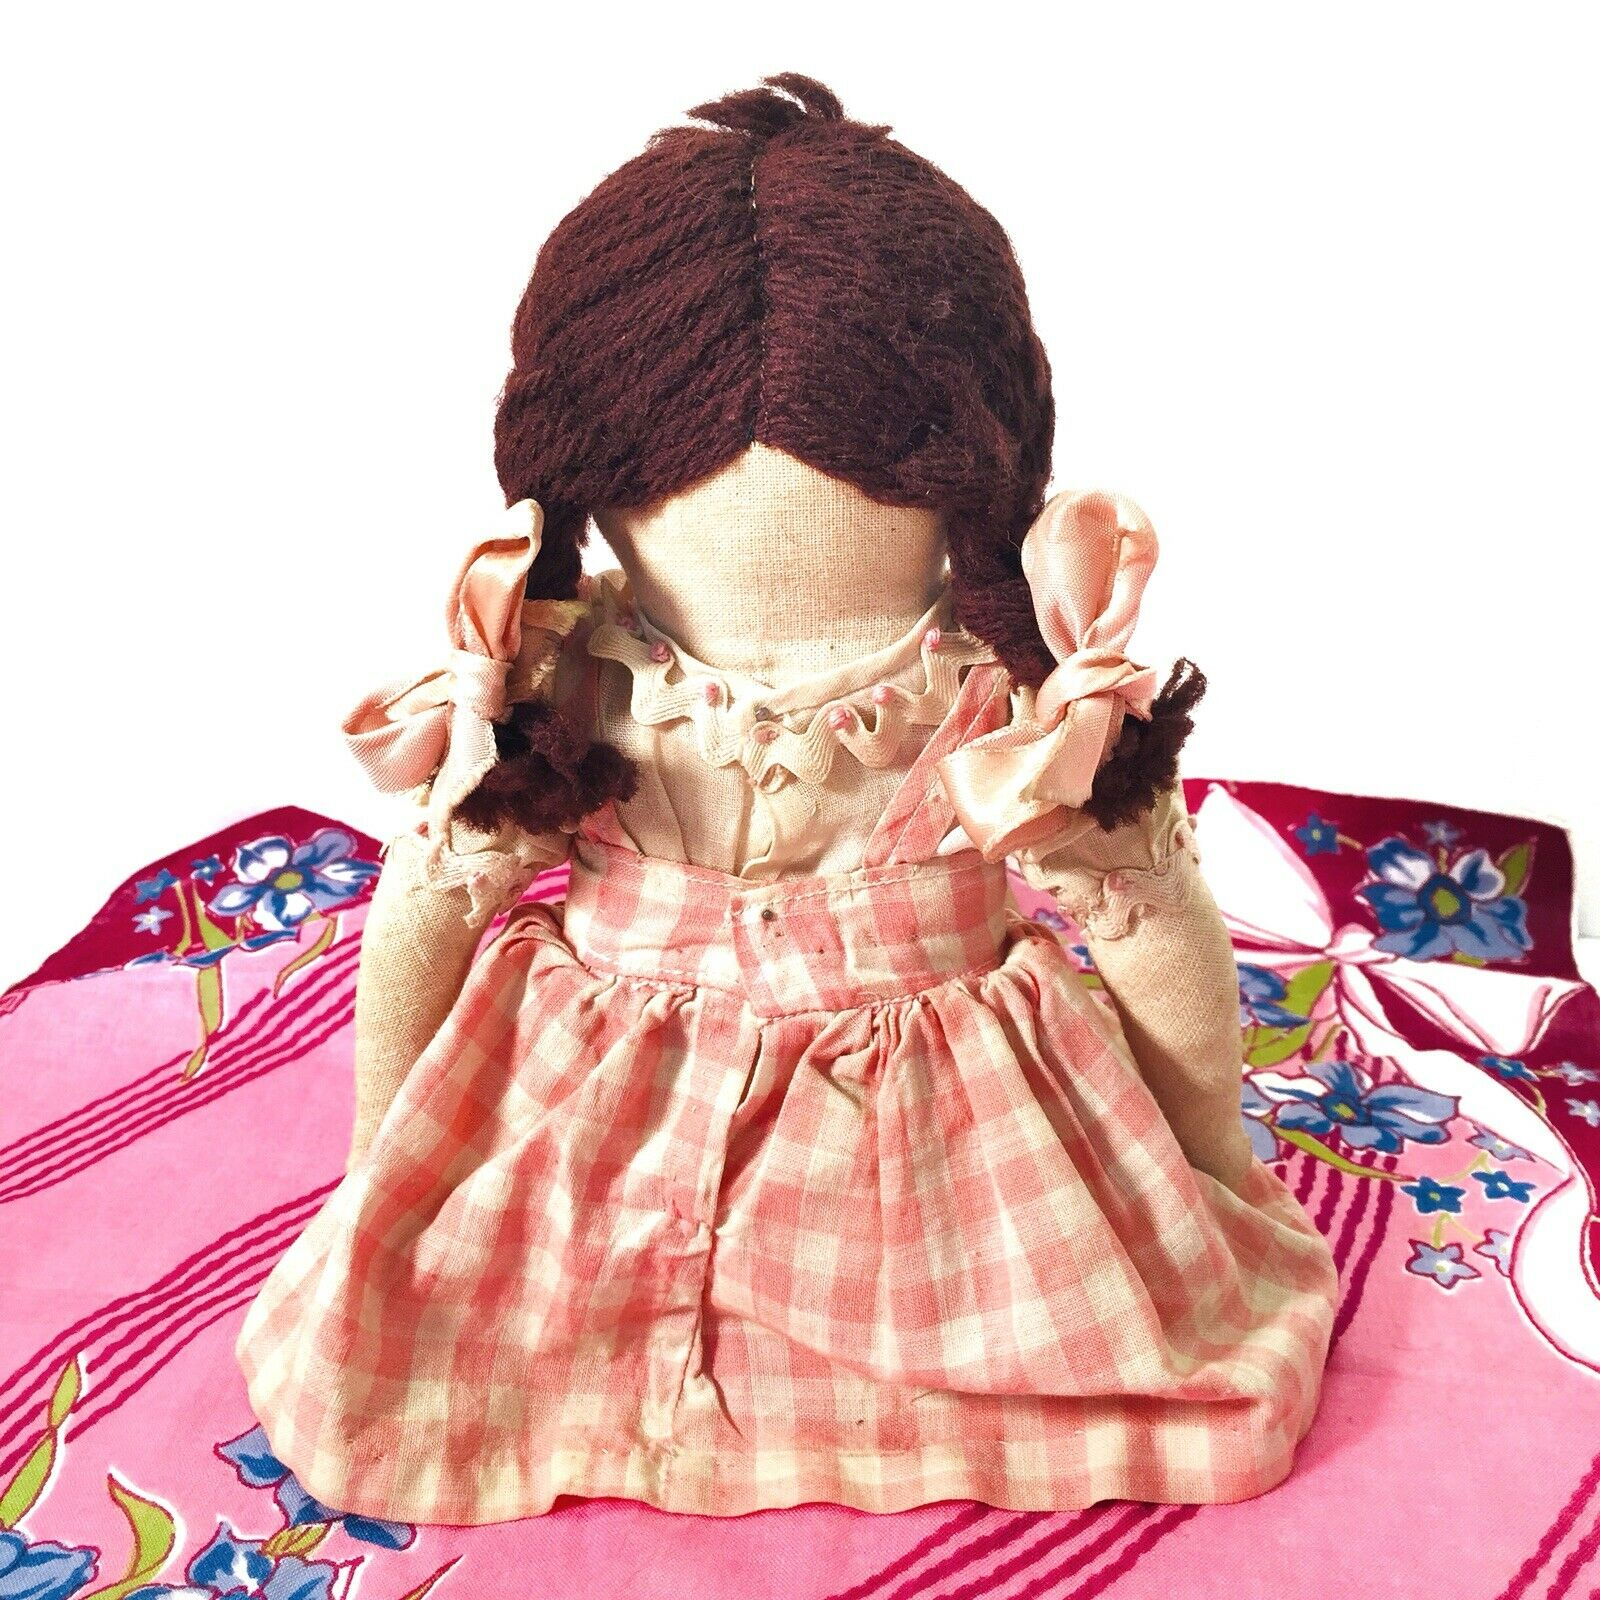 Antique Cloth Cloth Cloth Girl bambola with Embroiderosso Face in Original Clothes 1800's 03b1a6